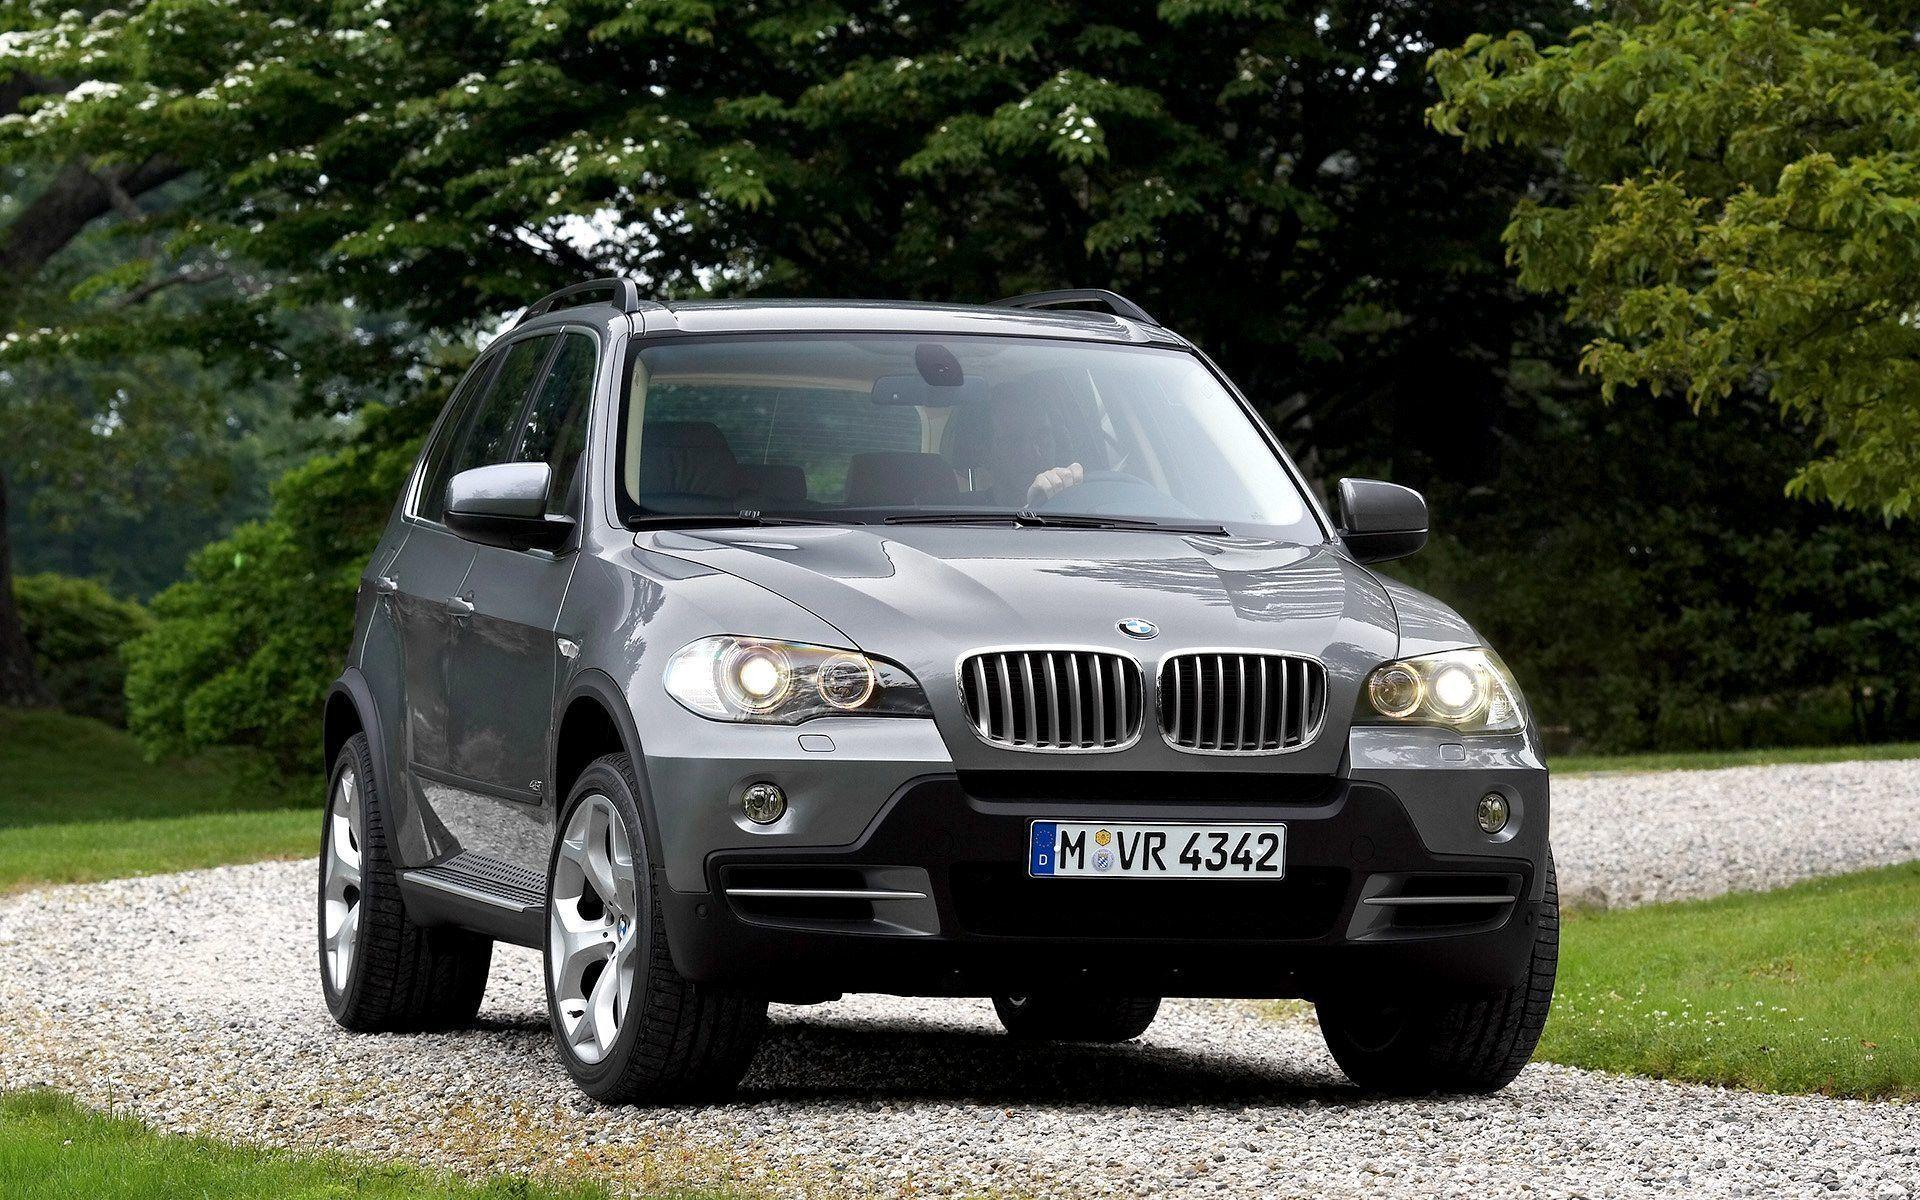 2007 BMW X5 Wallpaper 16 - 1920x1200